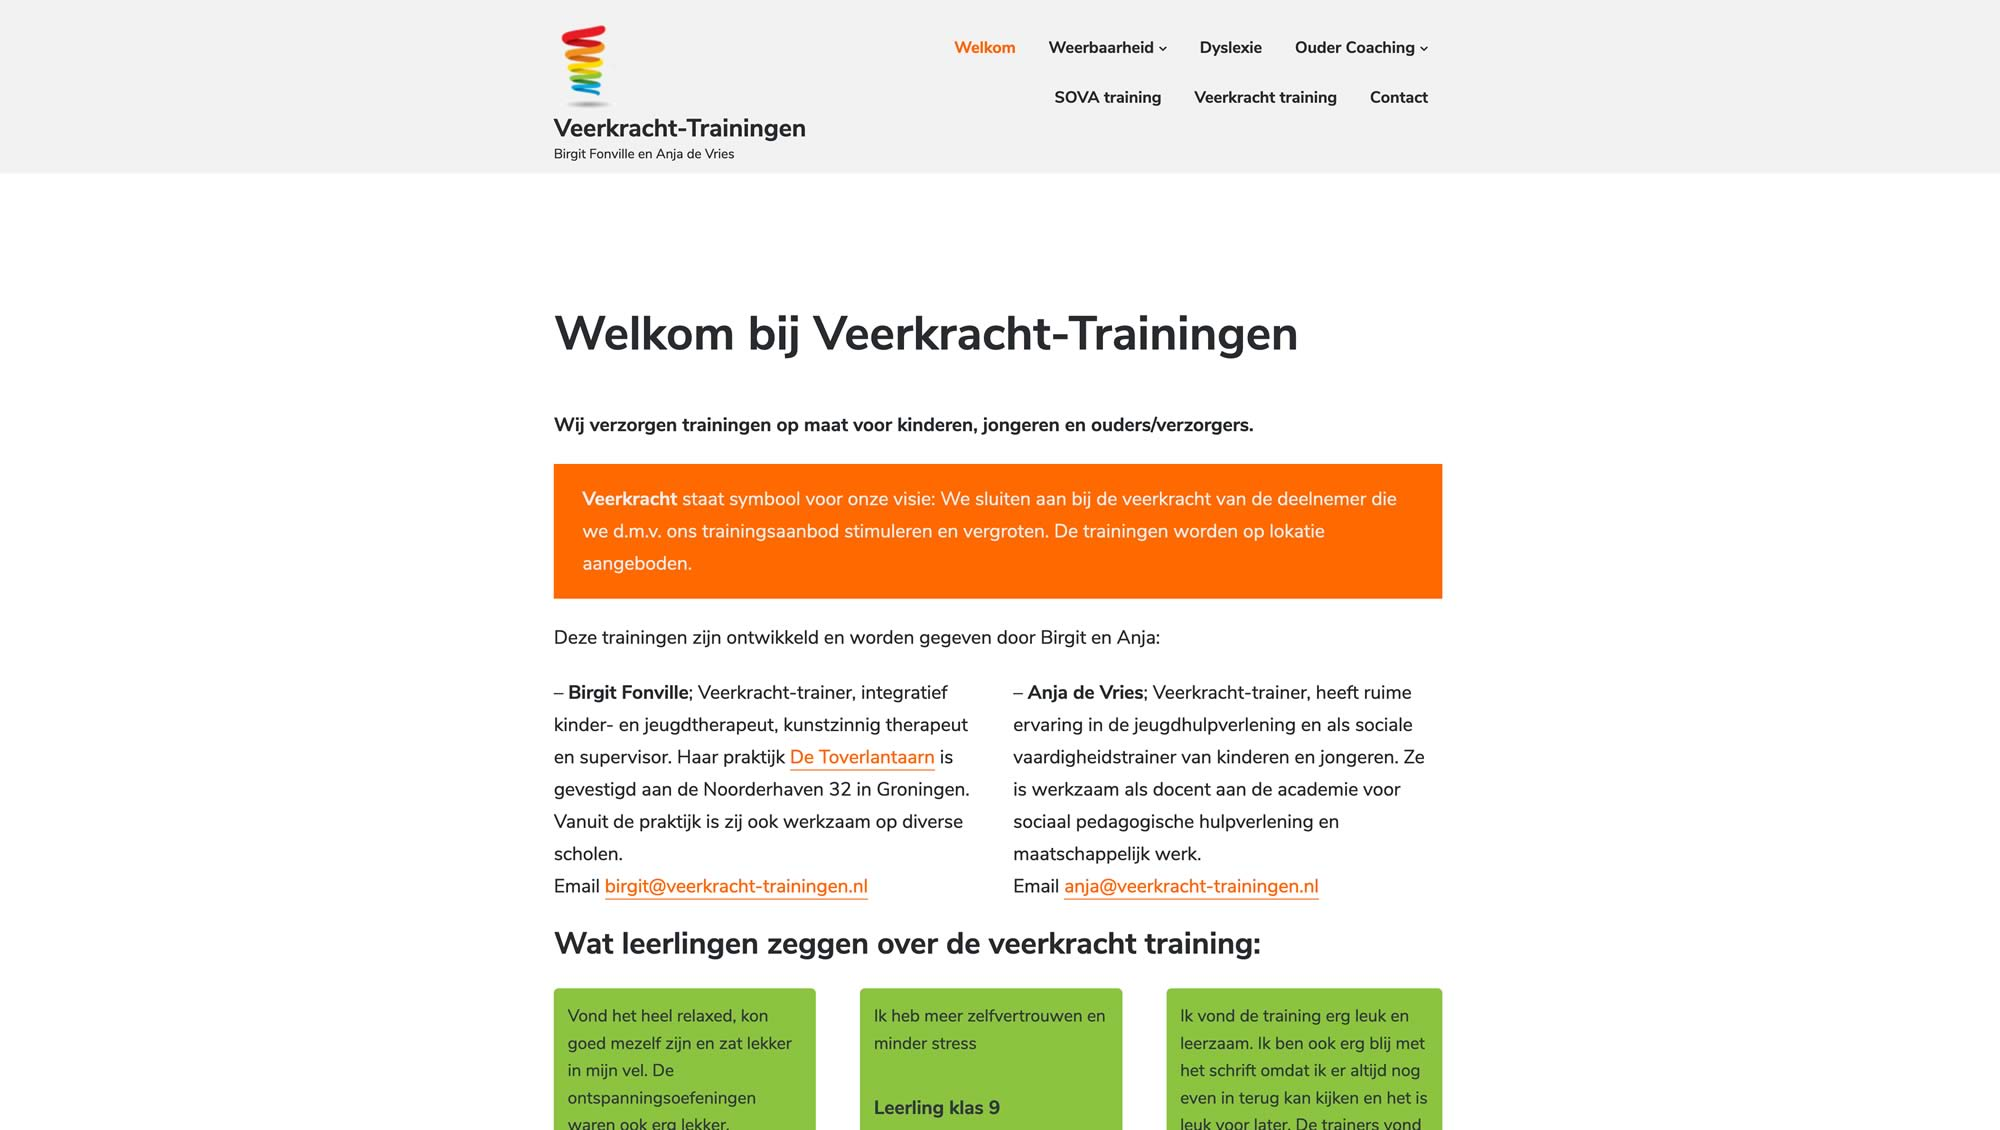 Veerkracht Trainingen